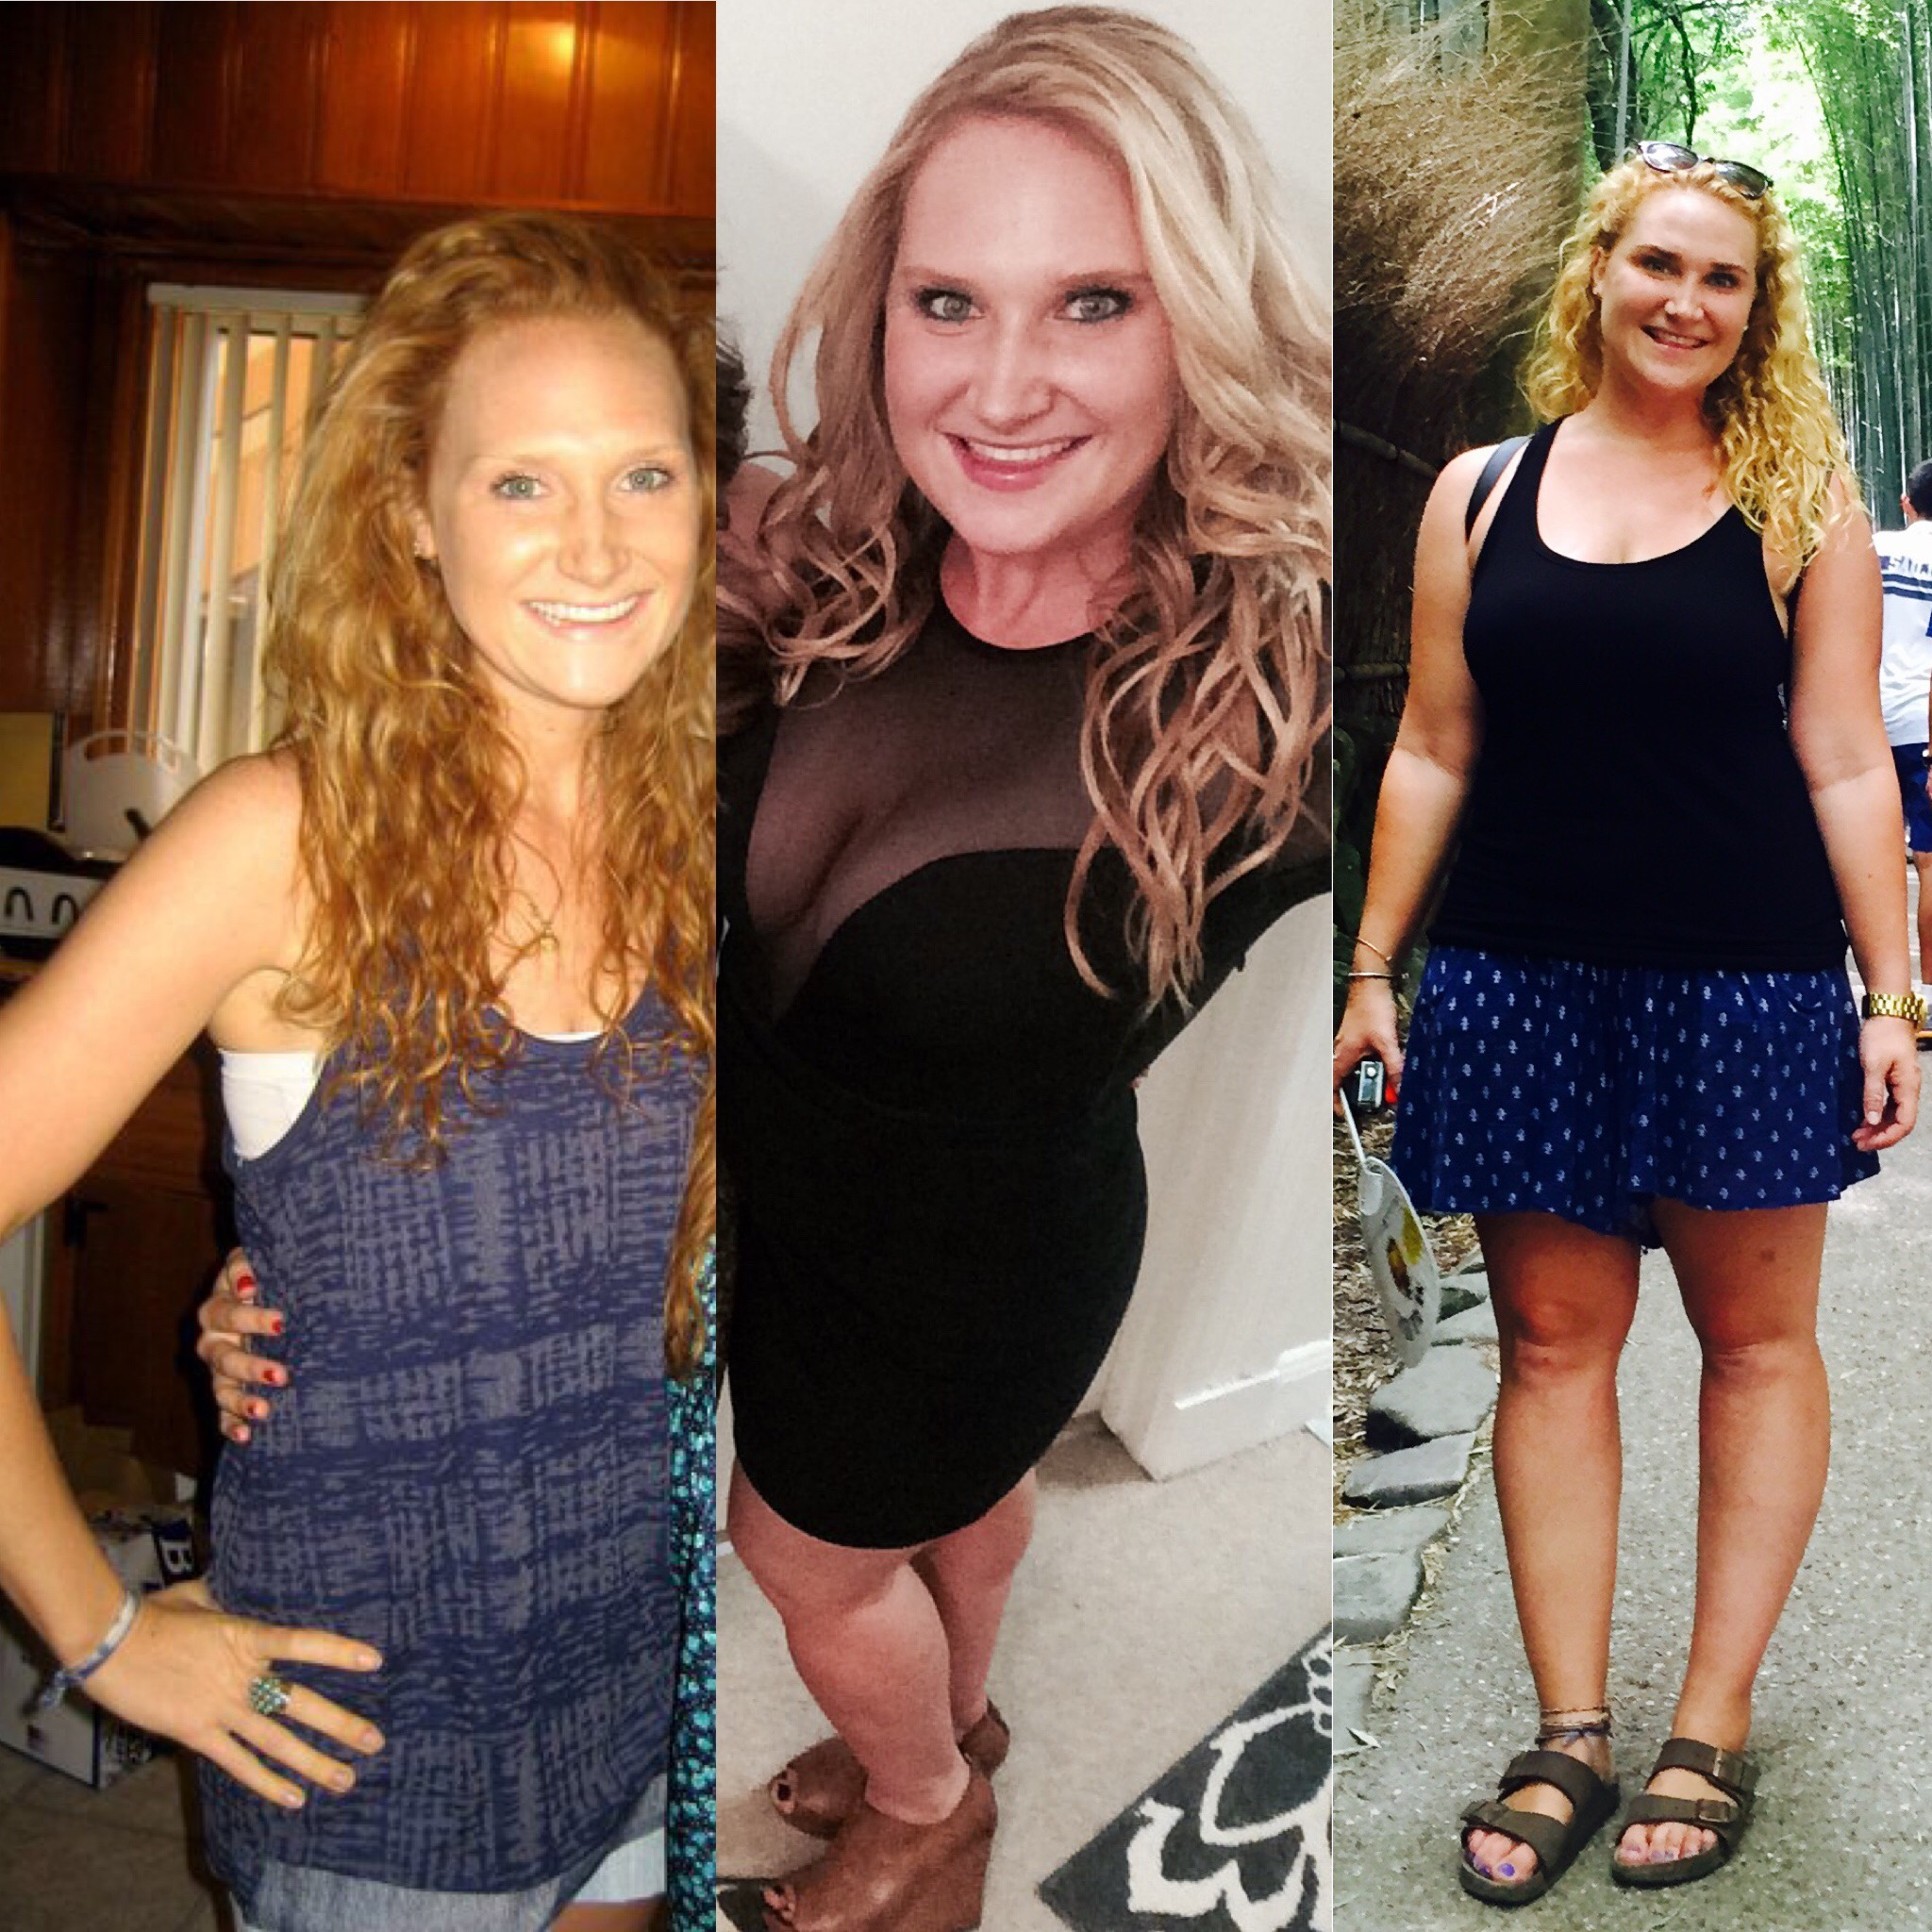 The many phases of an eating disorder...